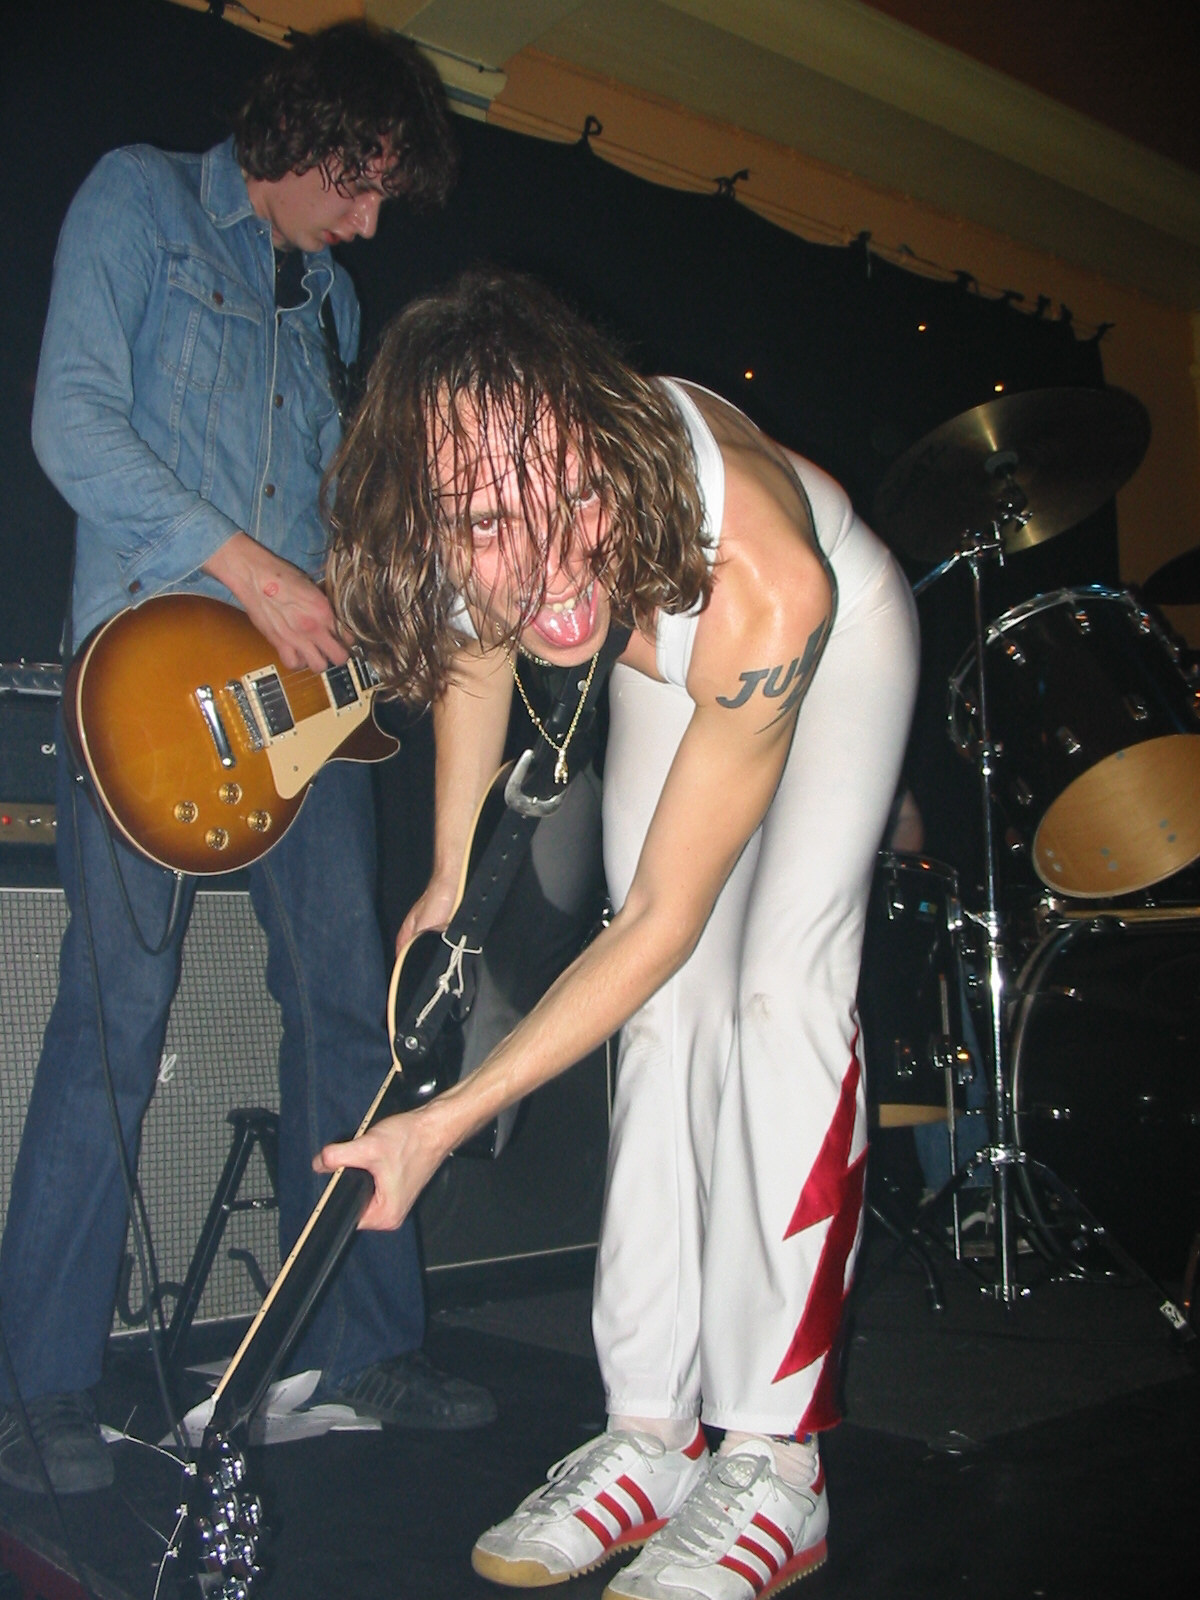 Justin in 1st catsuit, Tooting Castle, 16.11.01 - credited to Ludivine Mauger